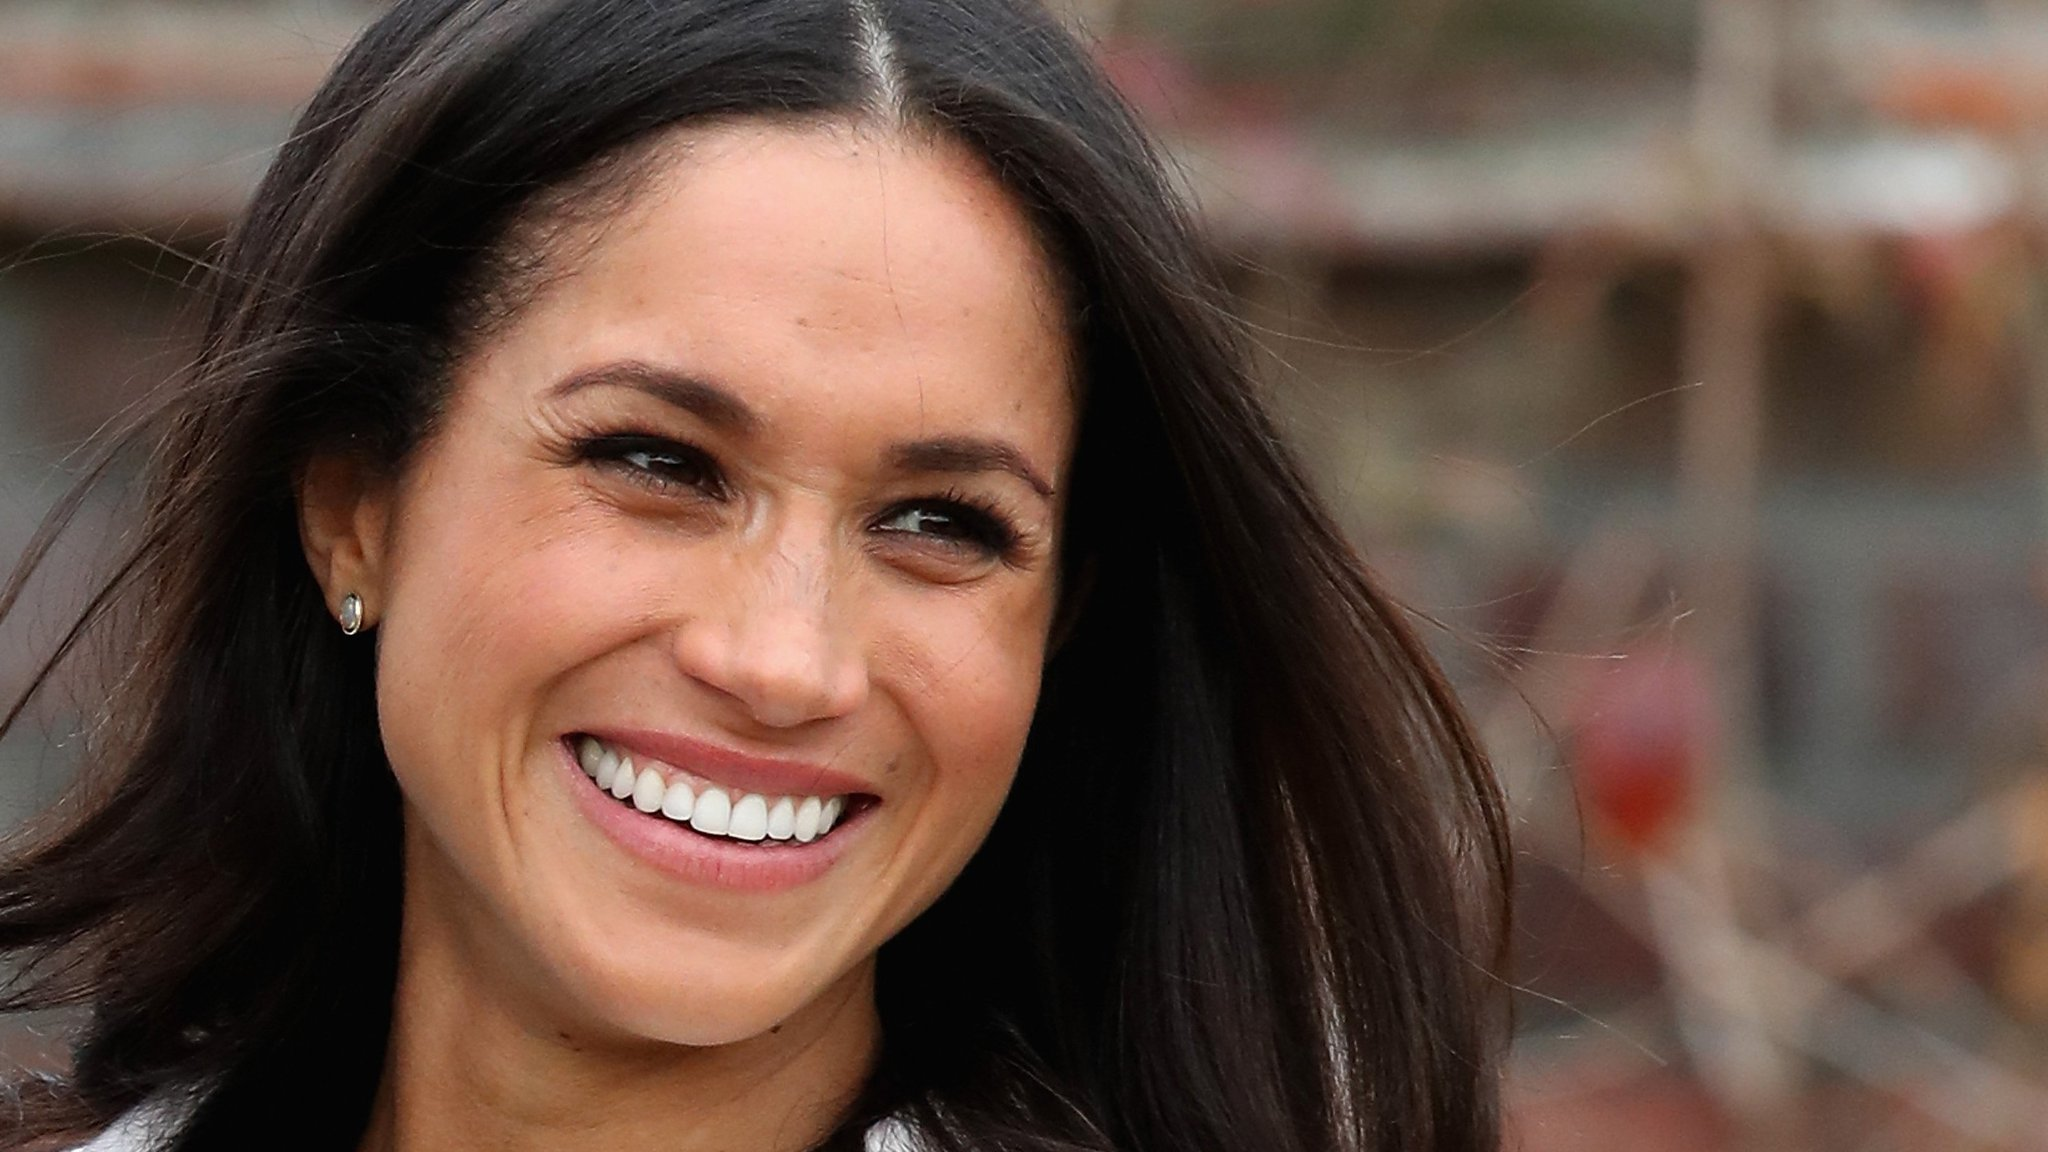 Meghan Markle: a breath of fresh air for the royal family